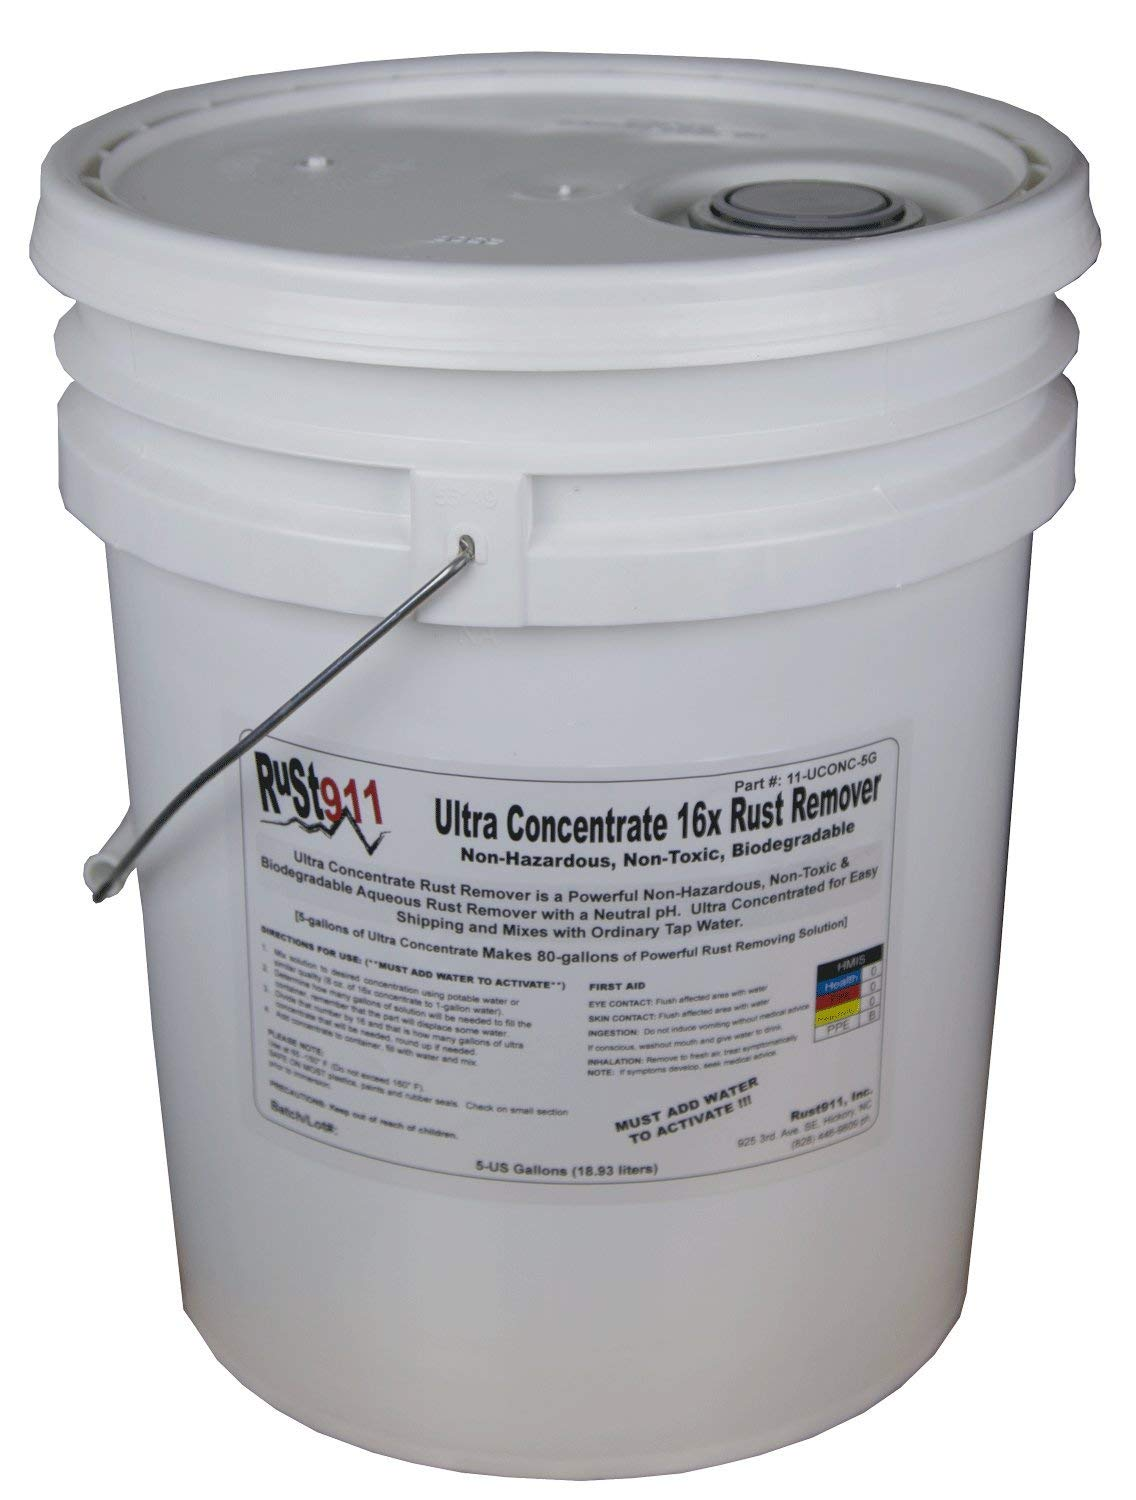 Rust911: Rust Remover Dissolver Makes 80-gallons of Economical, Safe-to-Use and Powerful Cleaner for All Your Oxidation Removal Treatments